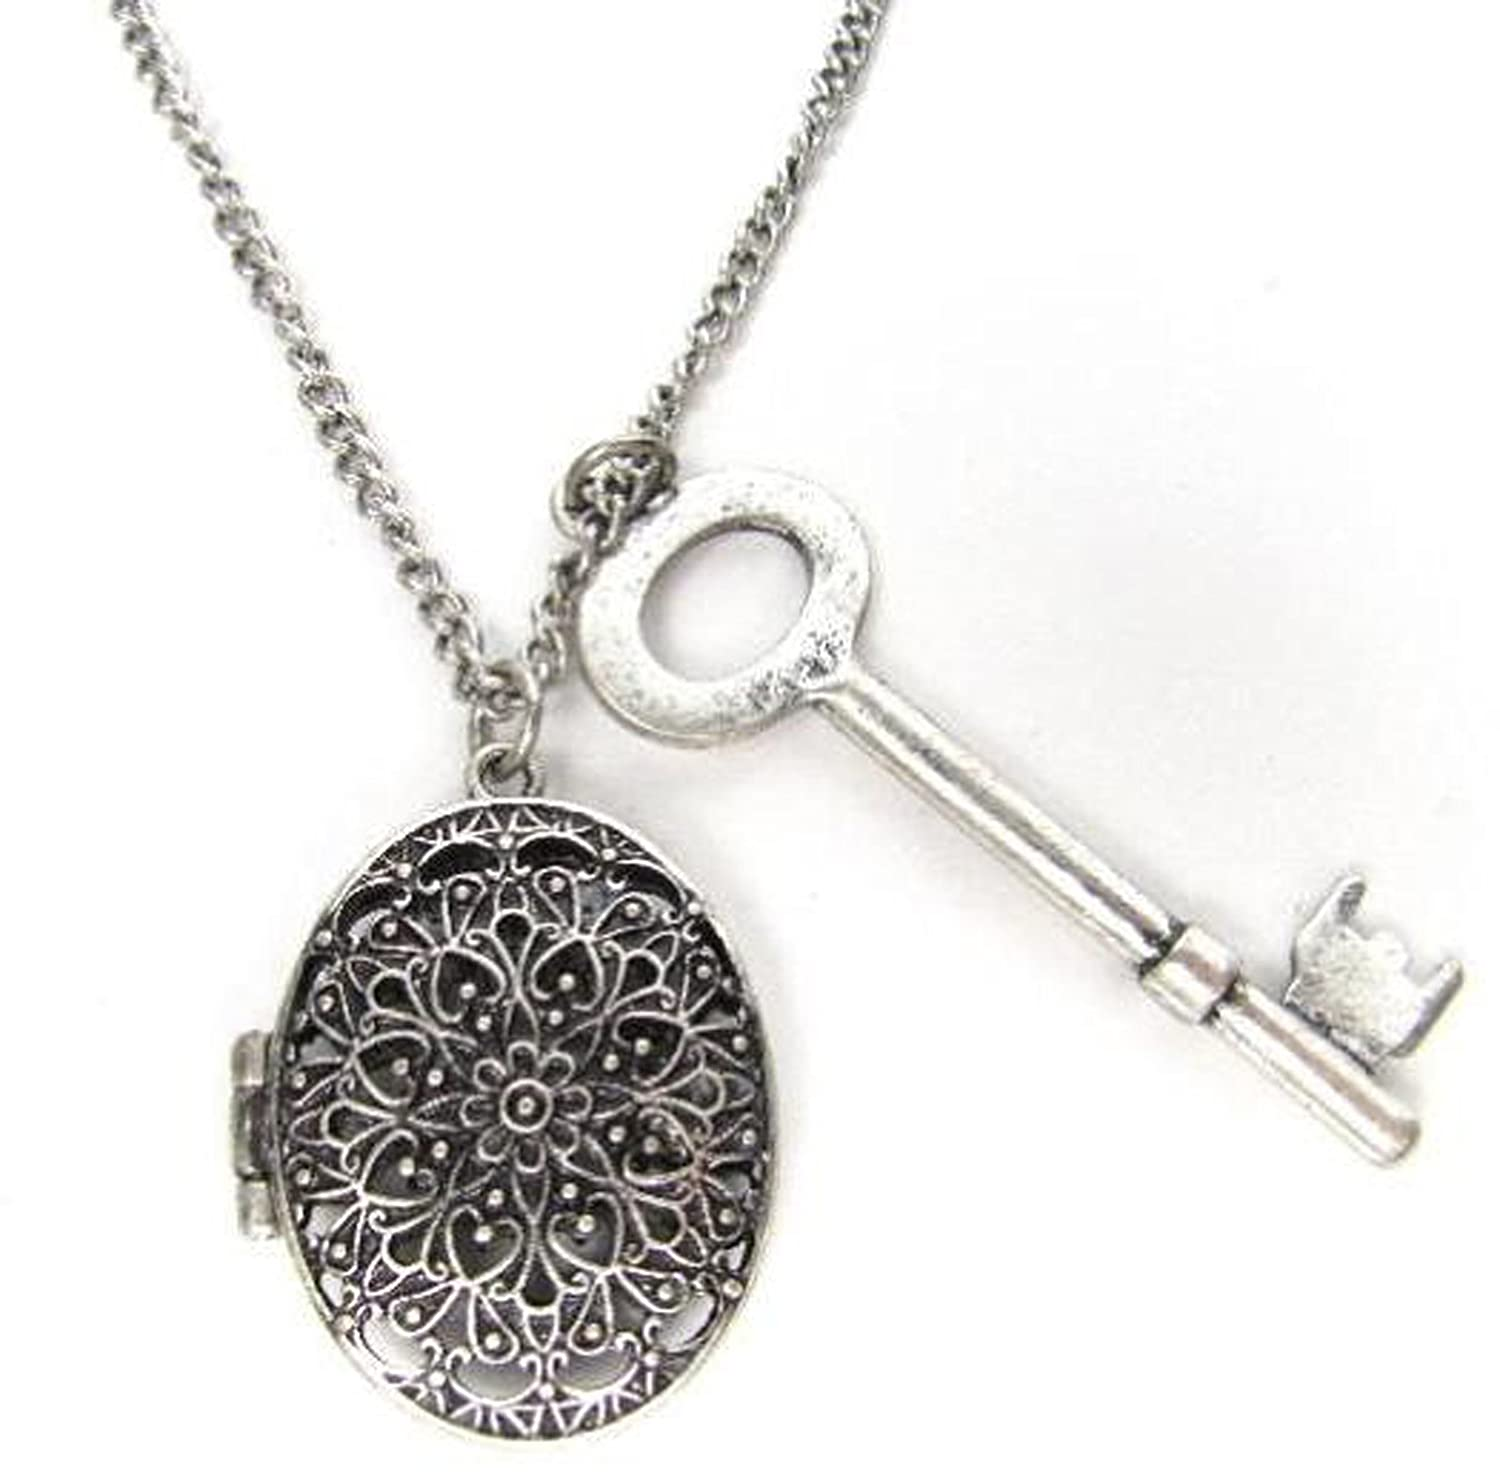 vintage necklace pendant diffuser style perfume oil the aromatherapy diffusery lockets locket essential chain products